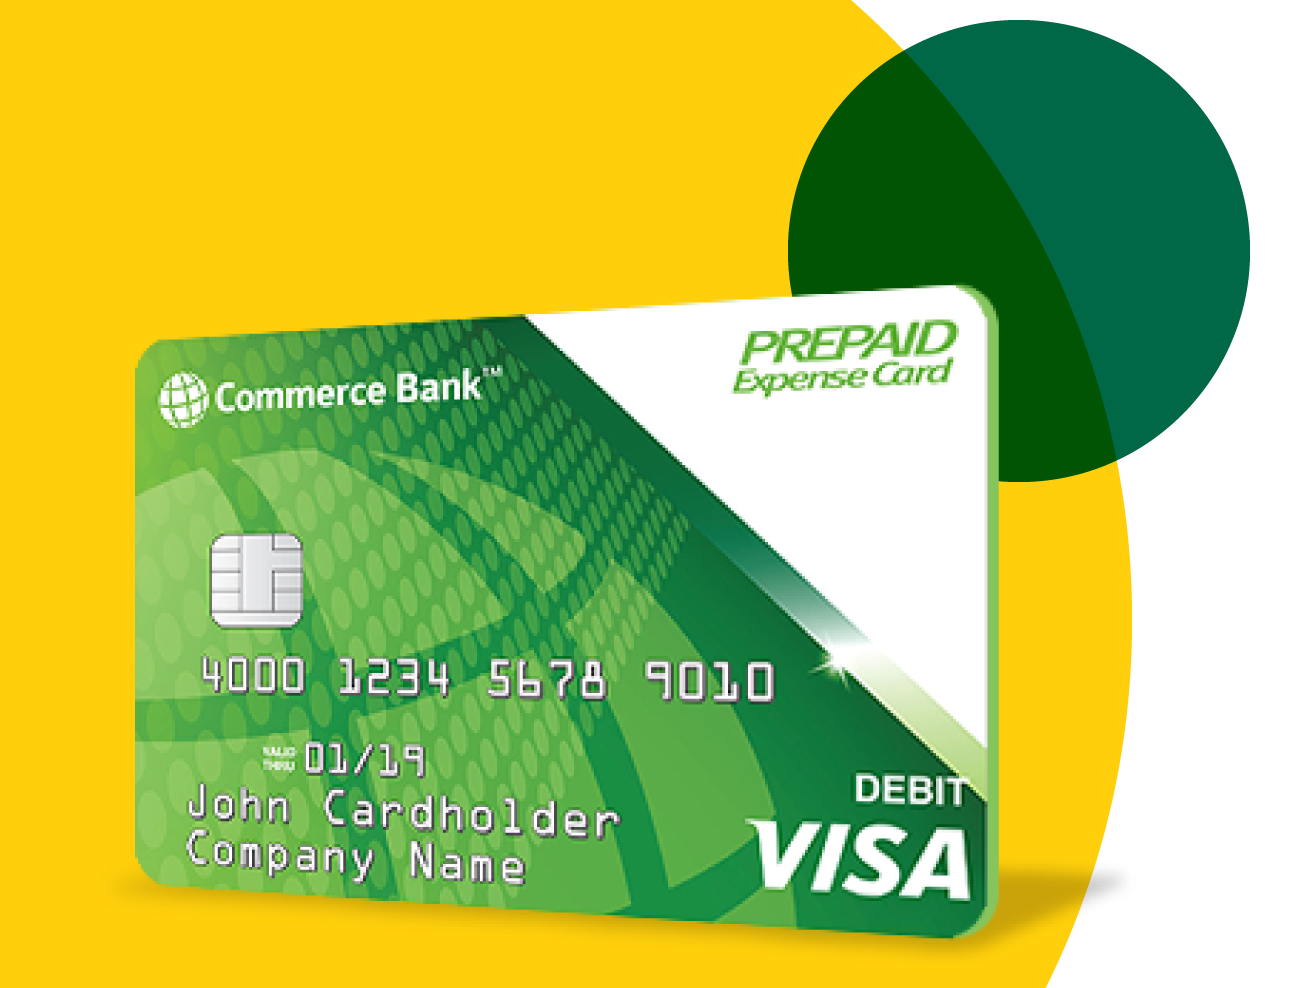 Prepaid expense card commerce bank image of the commerce bank prepaid expense card colourmoves Choice Image